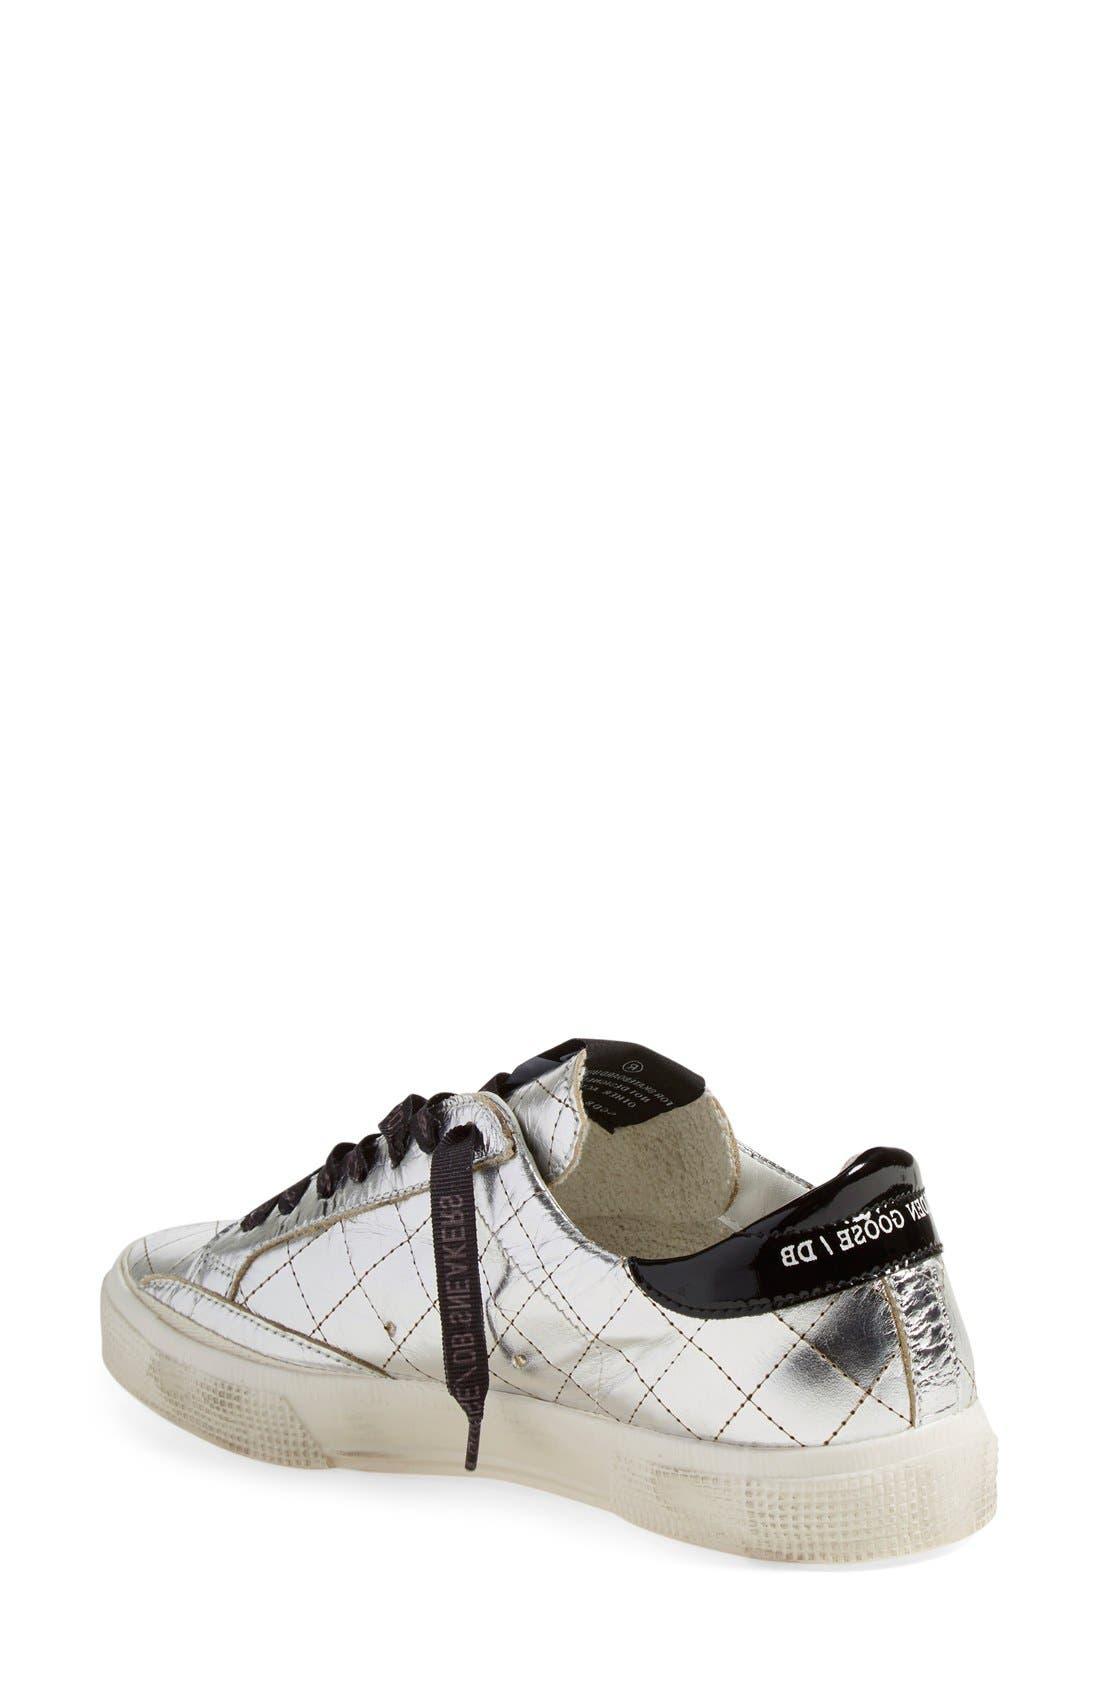 Alternate Image 2  - Golden Goose 'May' Low Top Sneaker (Women)